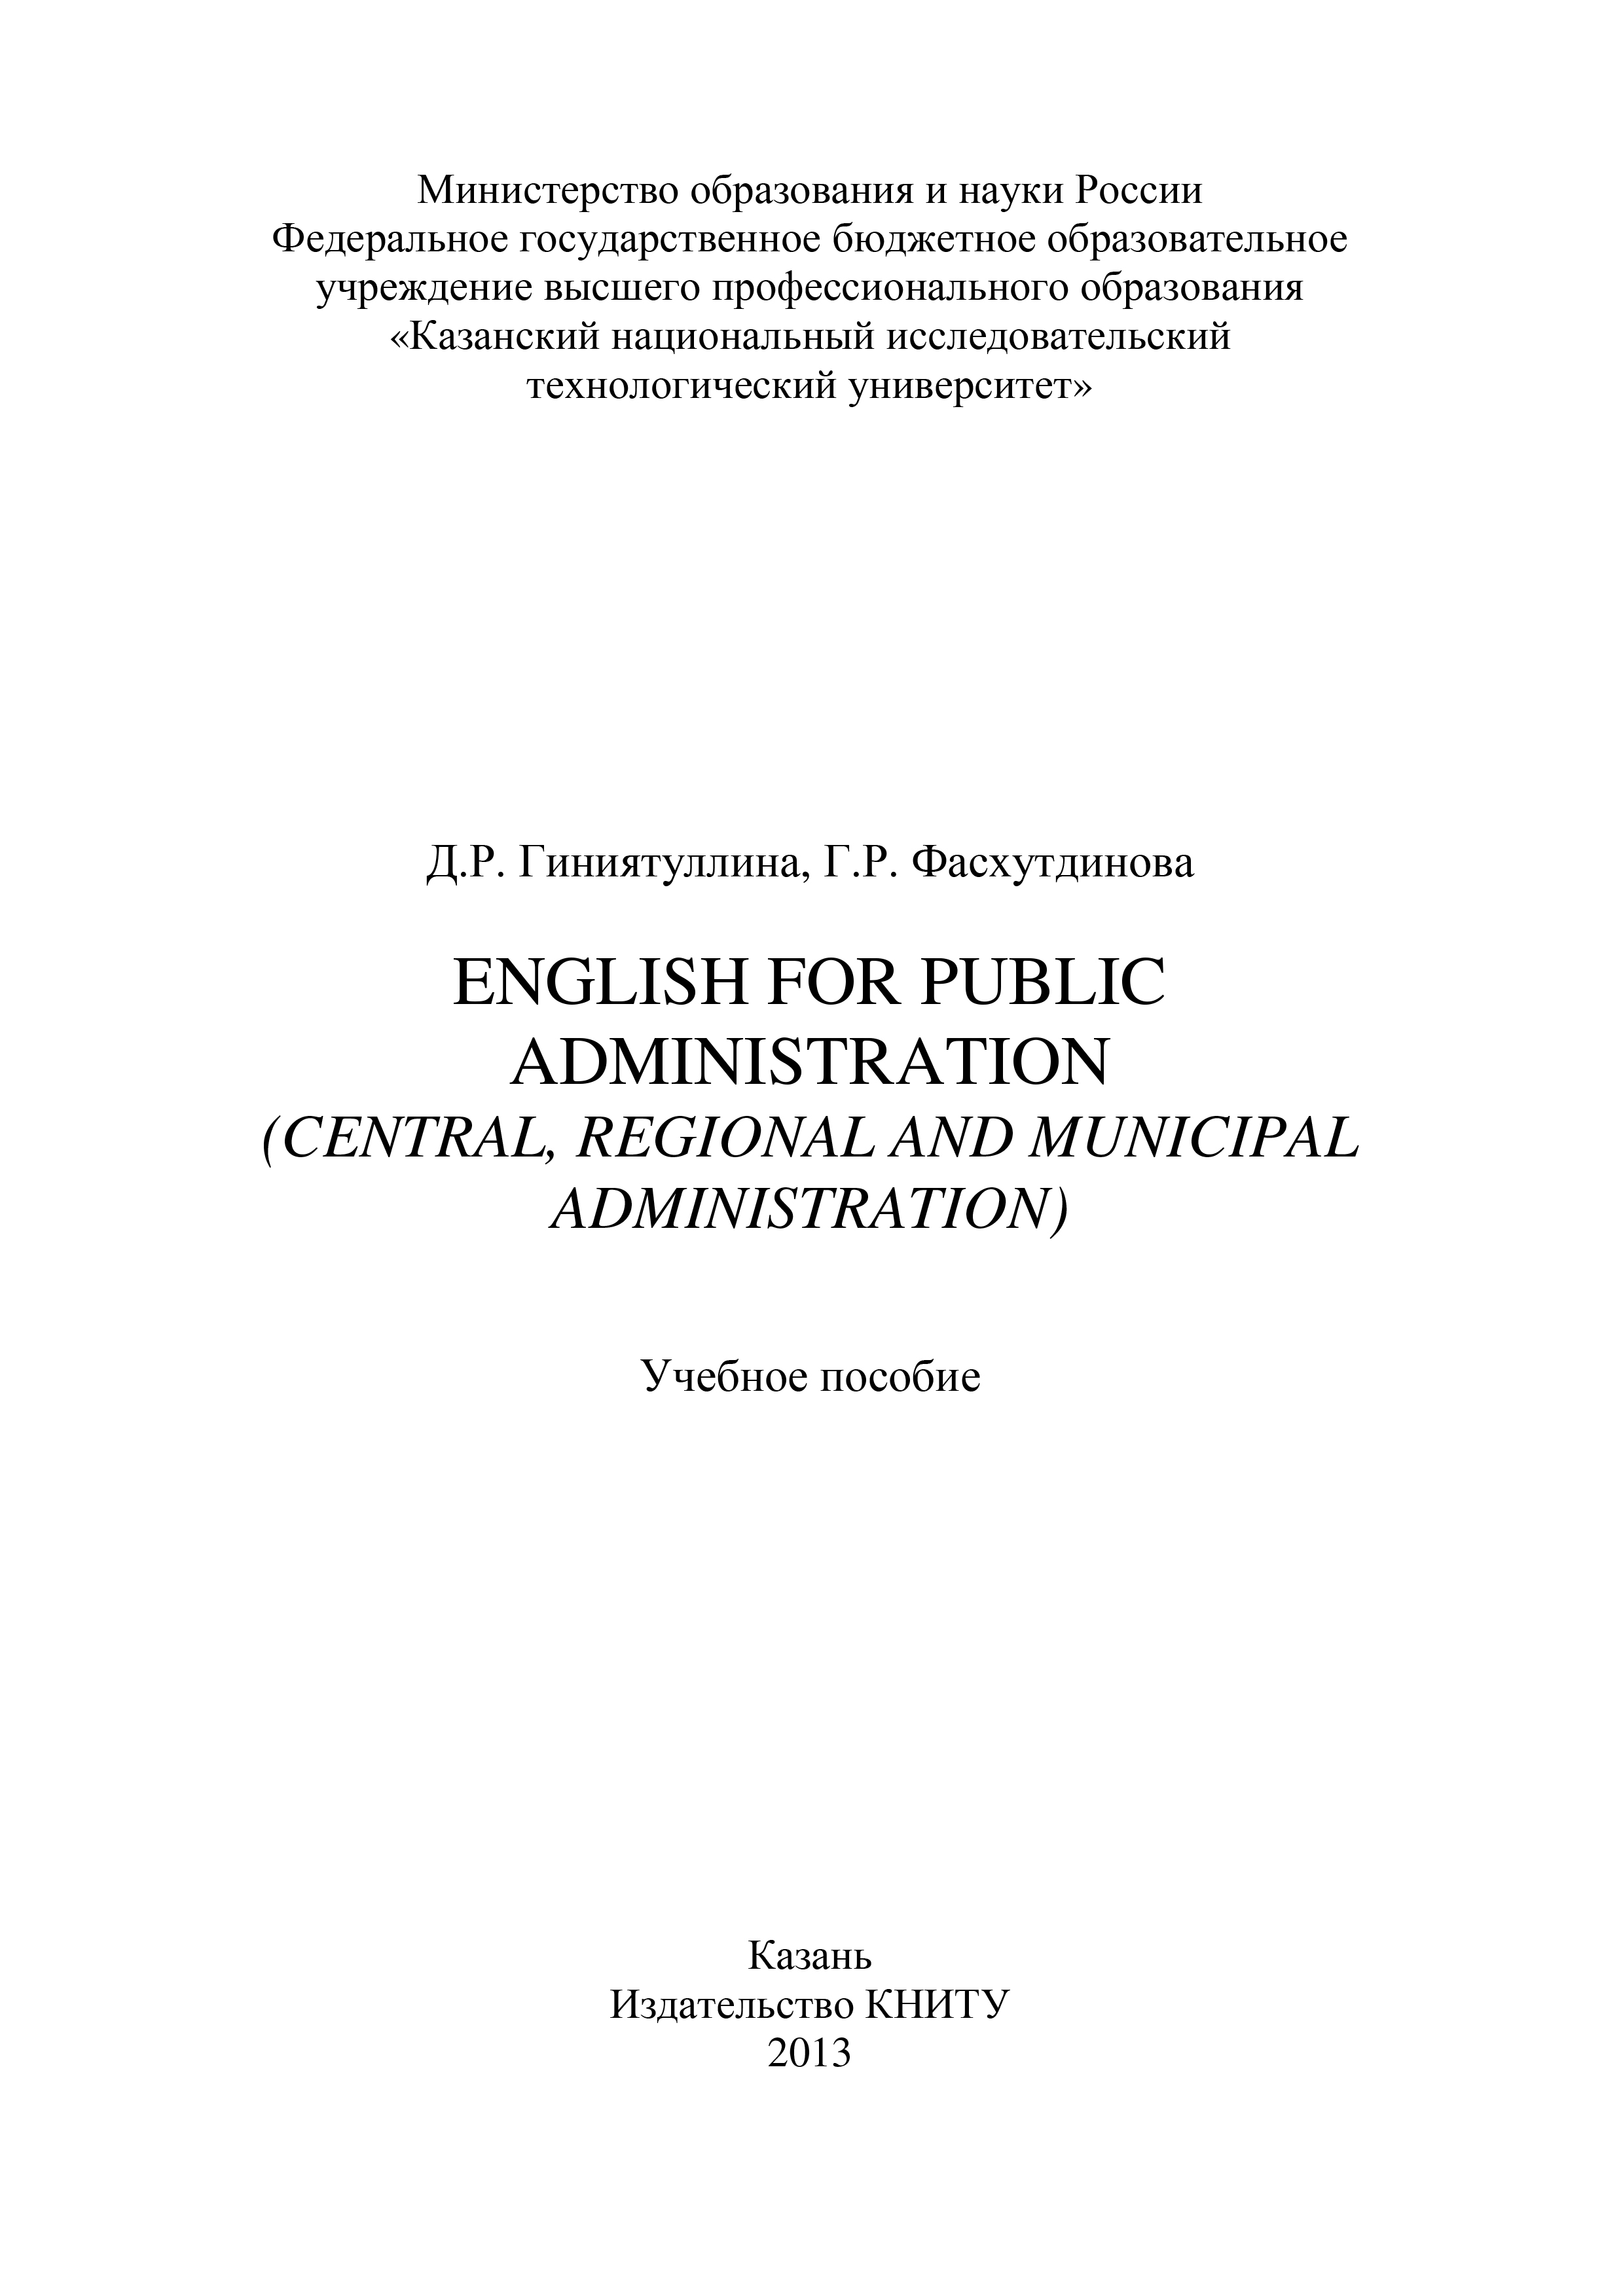 Д. Гиниятуллина English for Public Administration (Central, Regional and Municipal Administration)